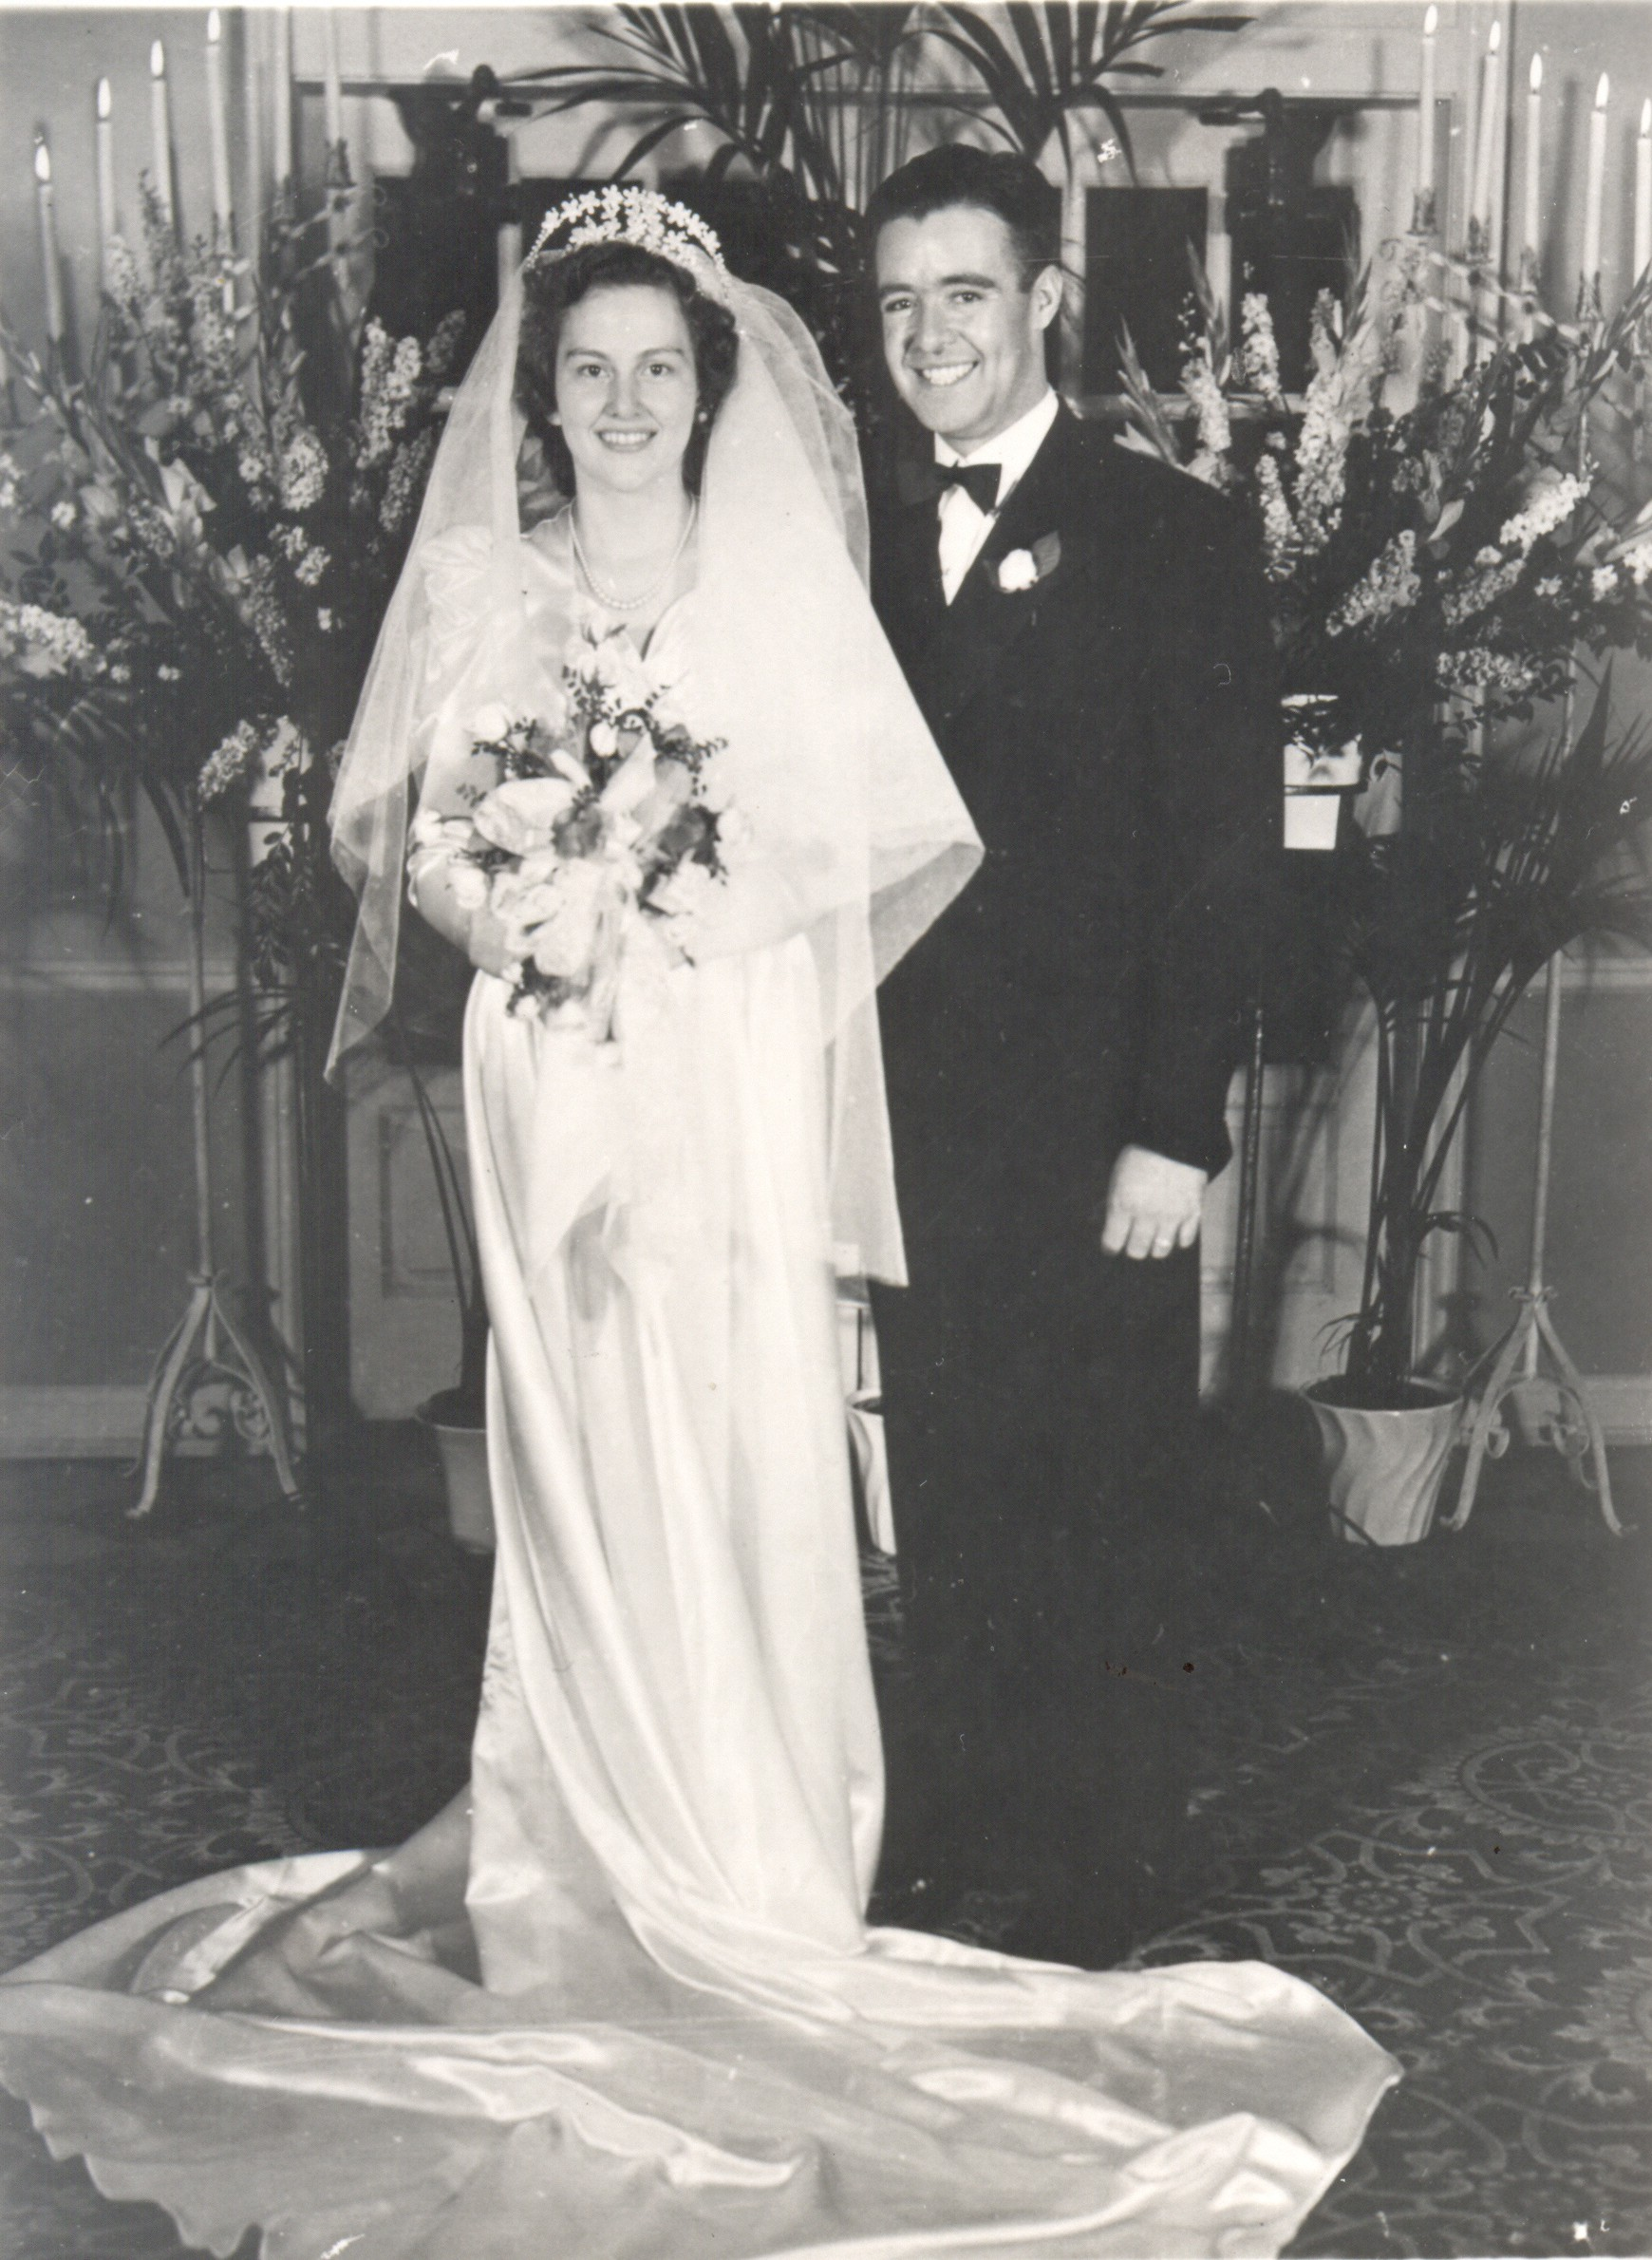 The Wedding of Evelyn Monson Lee & Charles Shirley Lee